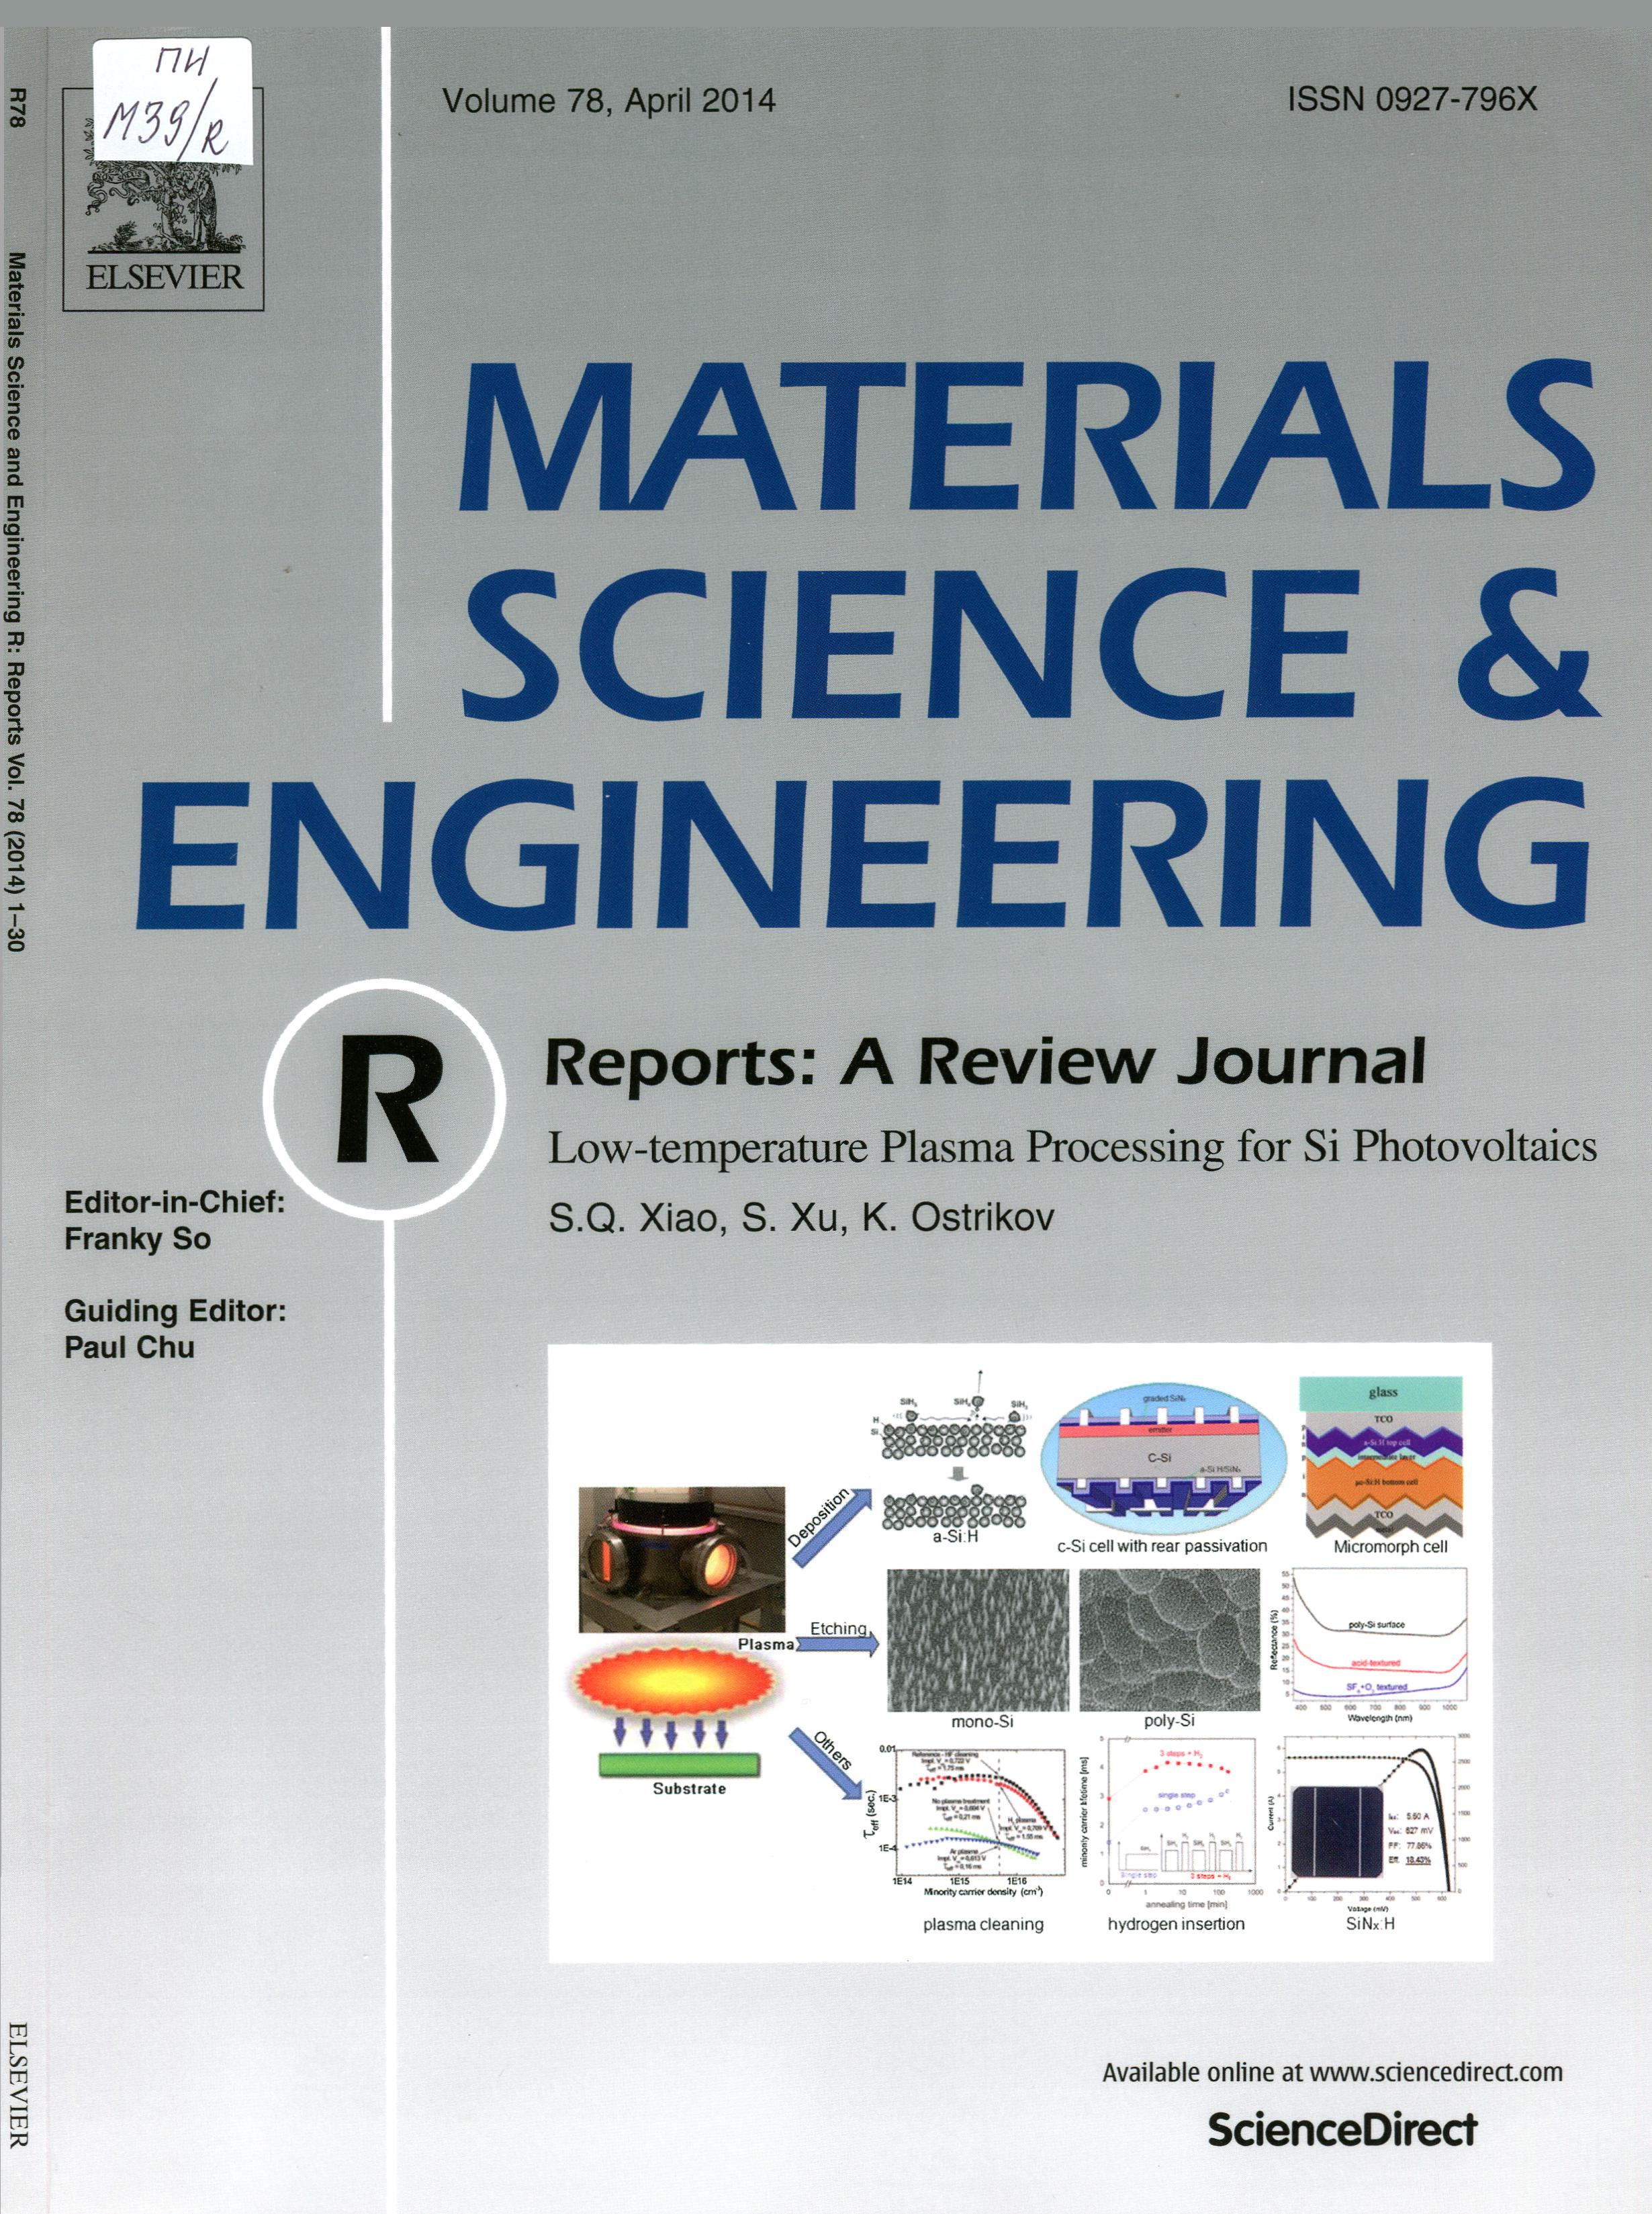 material science and engineering Materials engineers creatively find new ways to use products and may specialize in a specific material, such as plastics, ceramics or steel these are the top graduate schools for materials engineering each school's score reflects its average rating on a scale from 1 (marginal) to 5 (outstanding), based on a survey of academics at peer institutions.